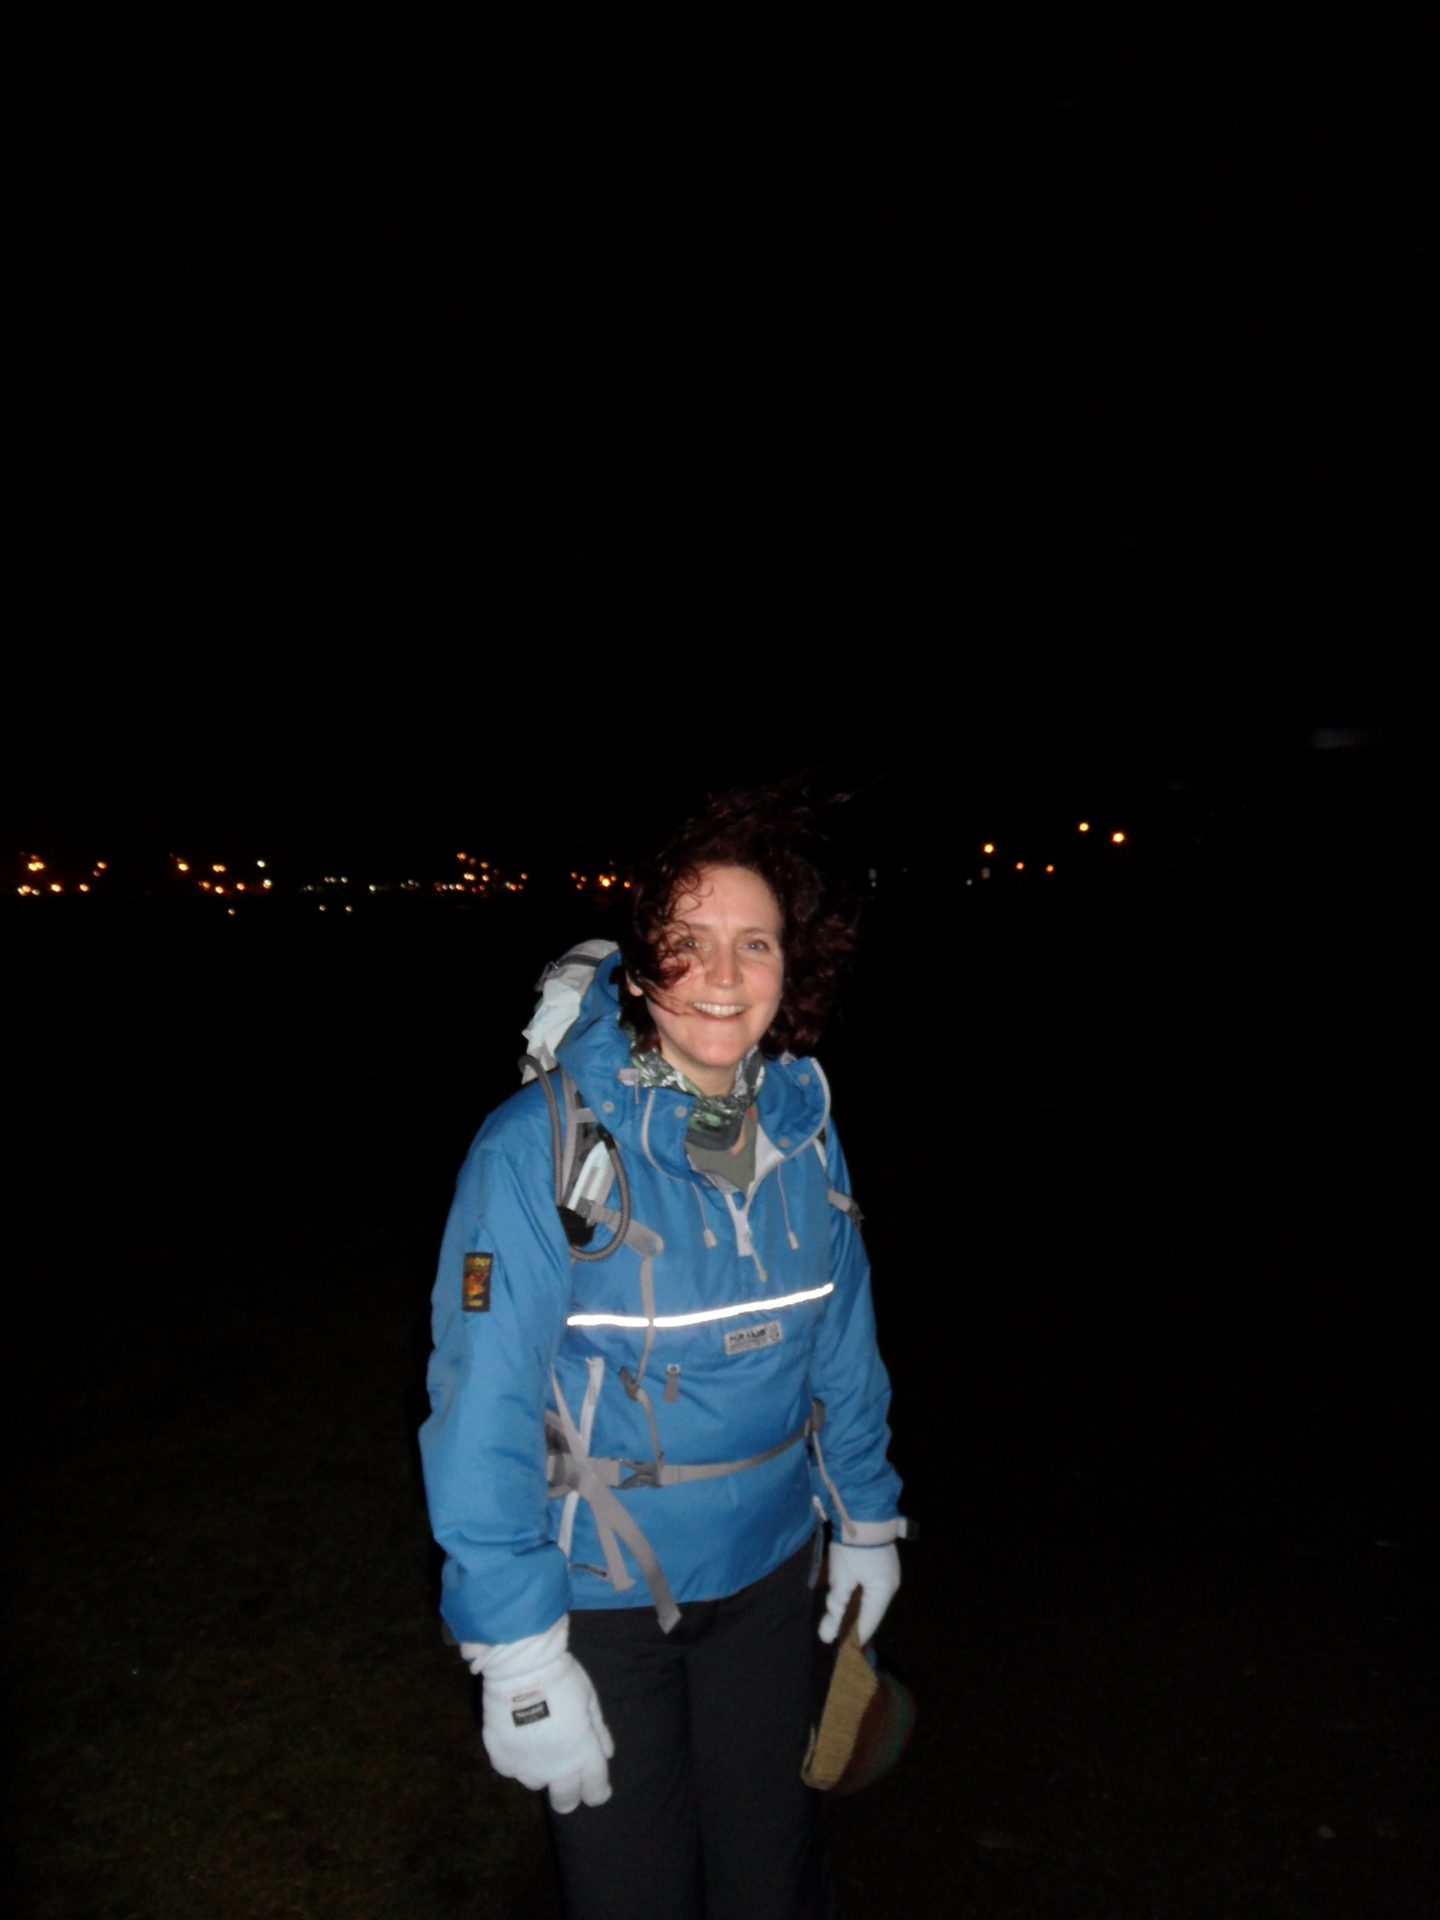 Zoe is standing outside, at night with her hair windswept but wearing a broad smile. Her blue, waterproof smock, gloves and woolly hat in her hand suggests it's a cold night but she's happy, training for her dream and unbeknown to her, also training for how to cope with heartbreak and her empty nest.